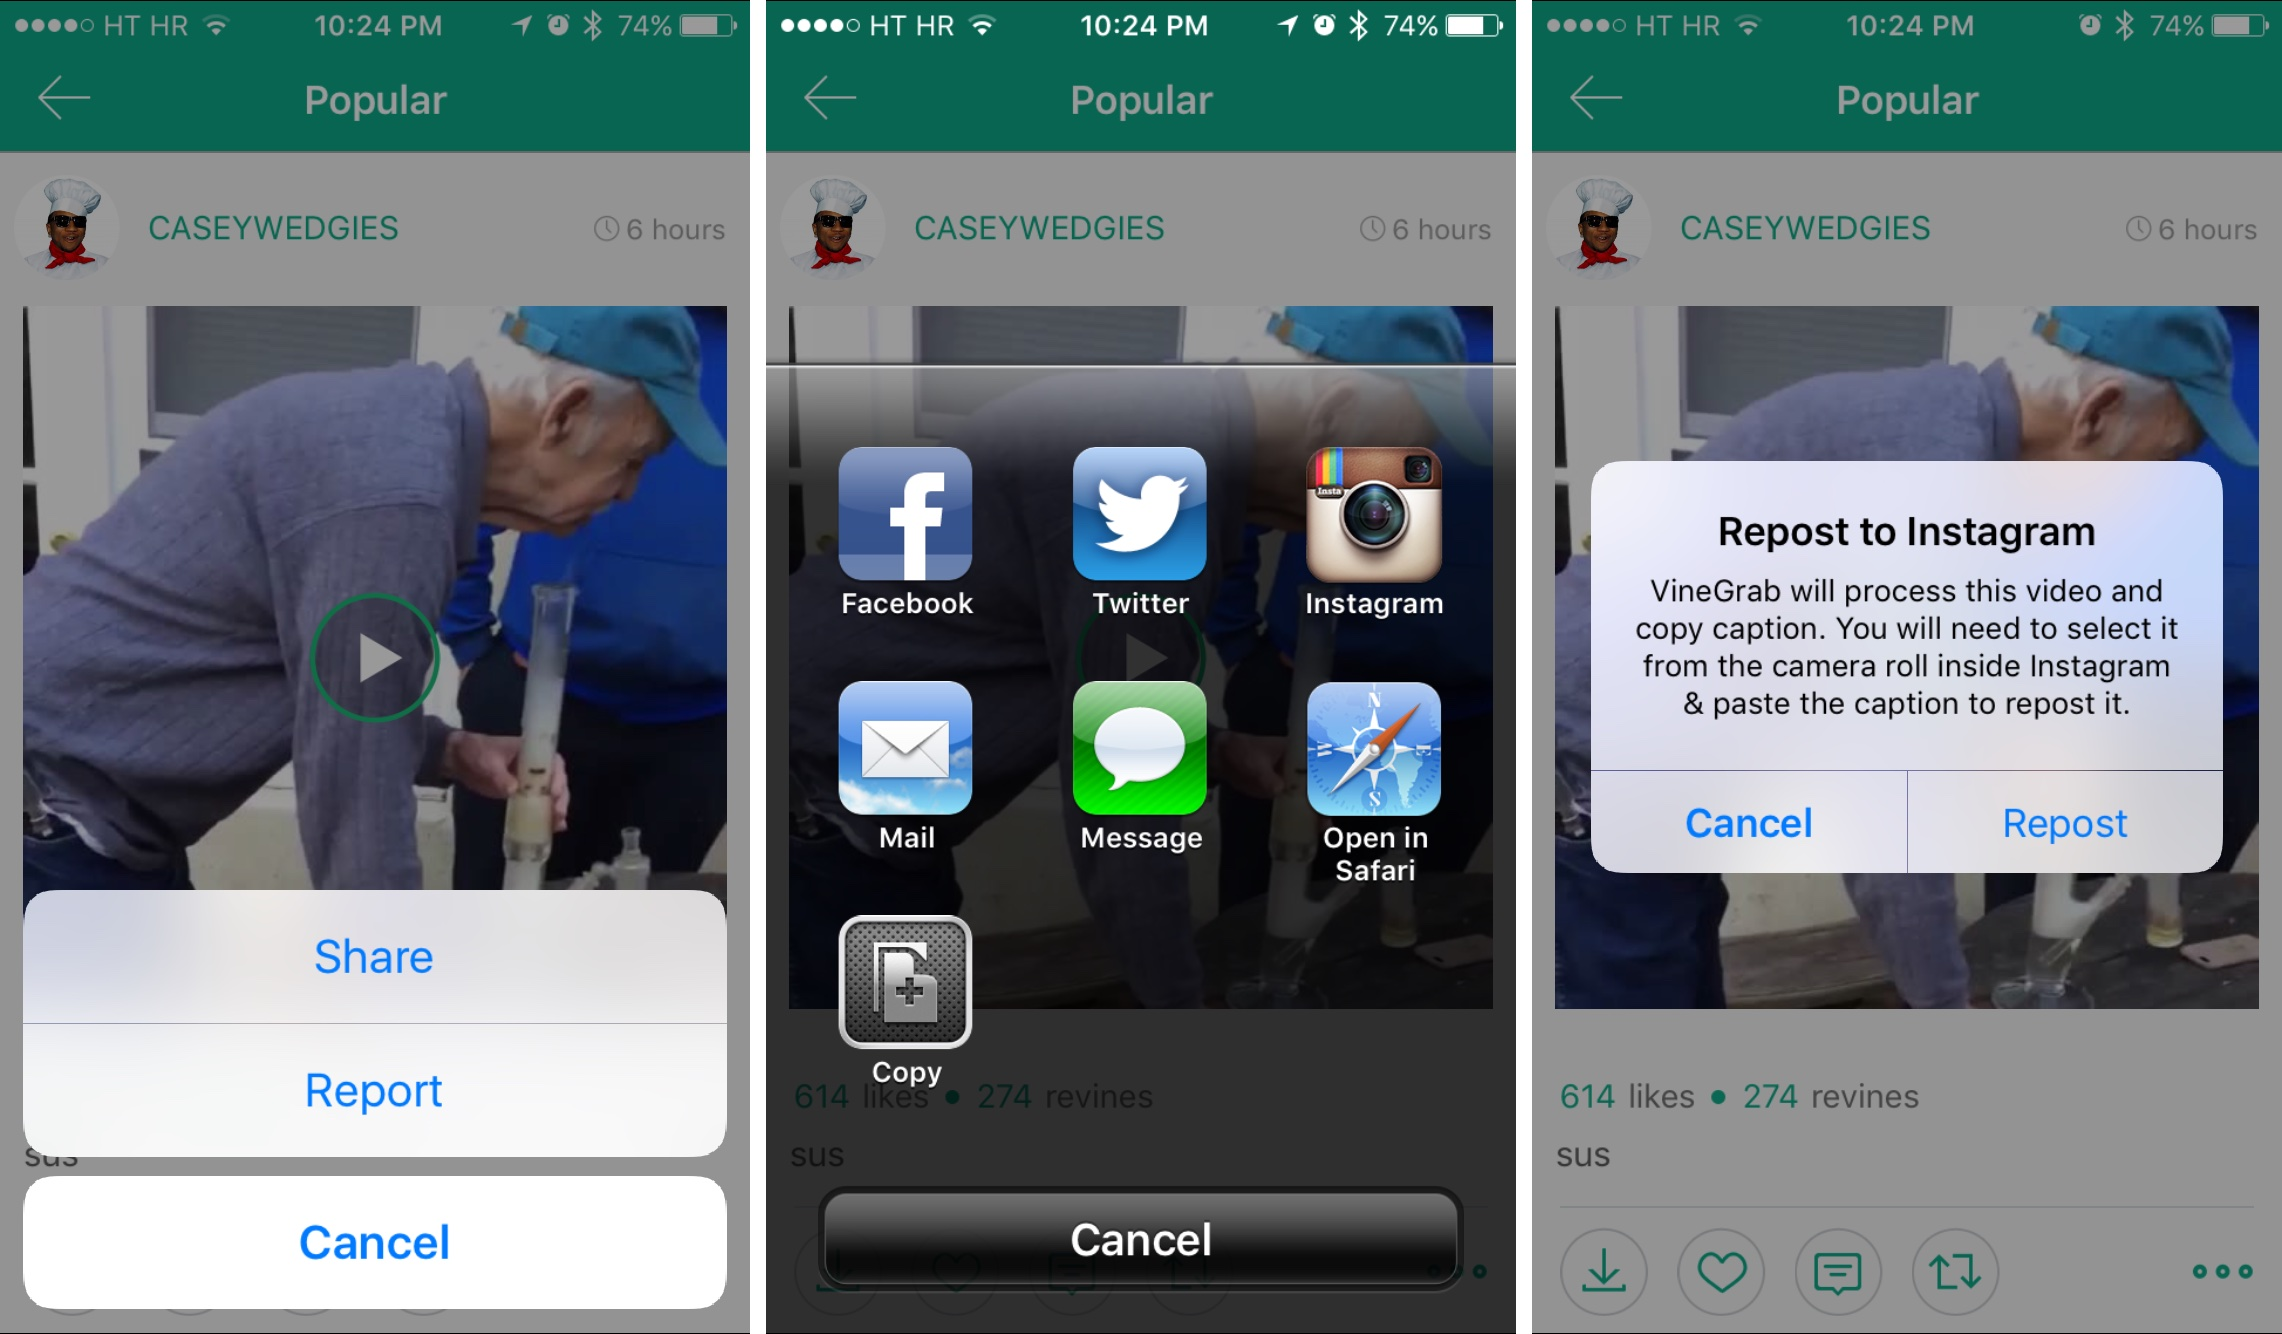 How to repost Vine videos on Instagram with VineGrab iPhone screenshot 003